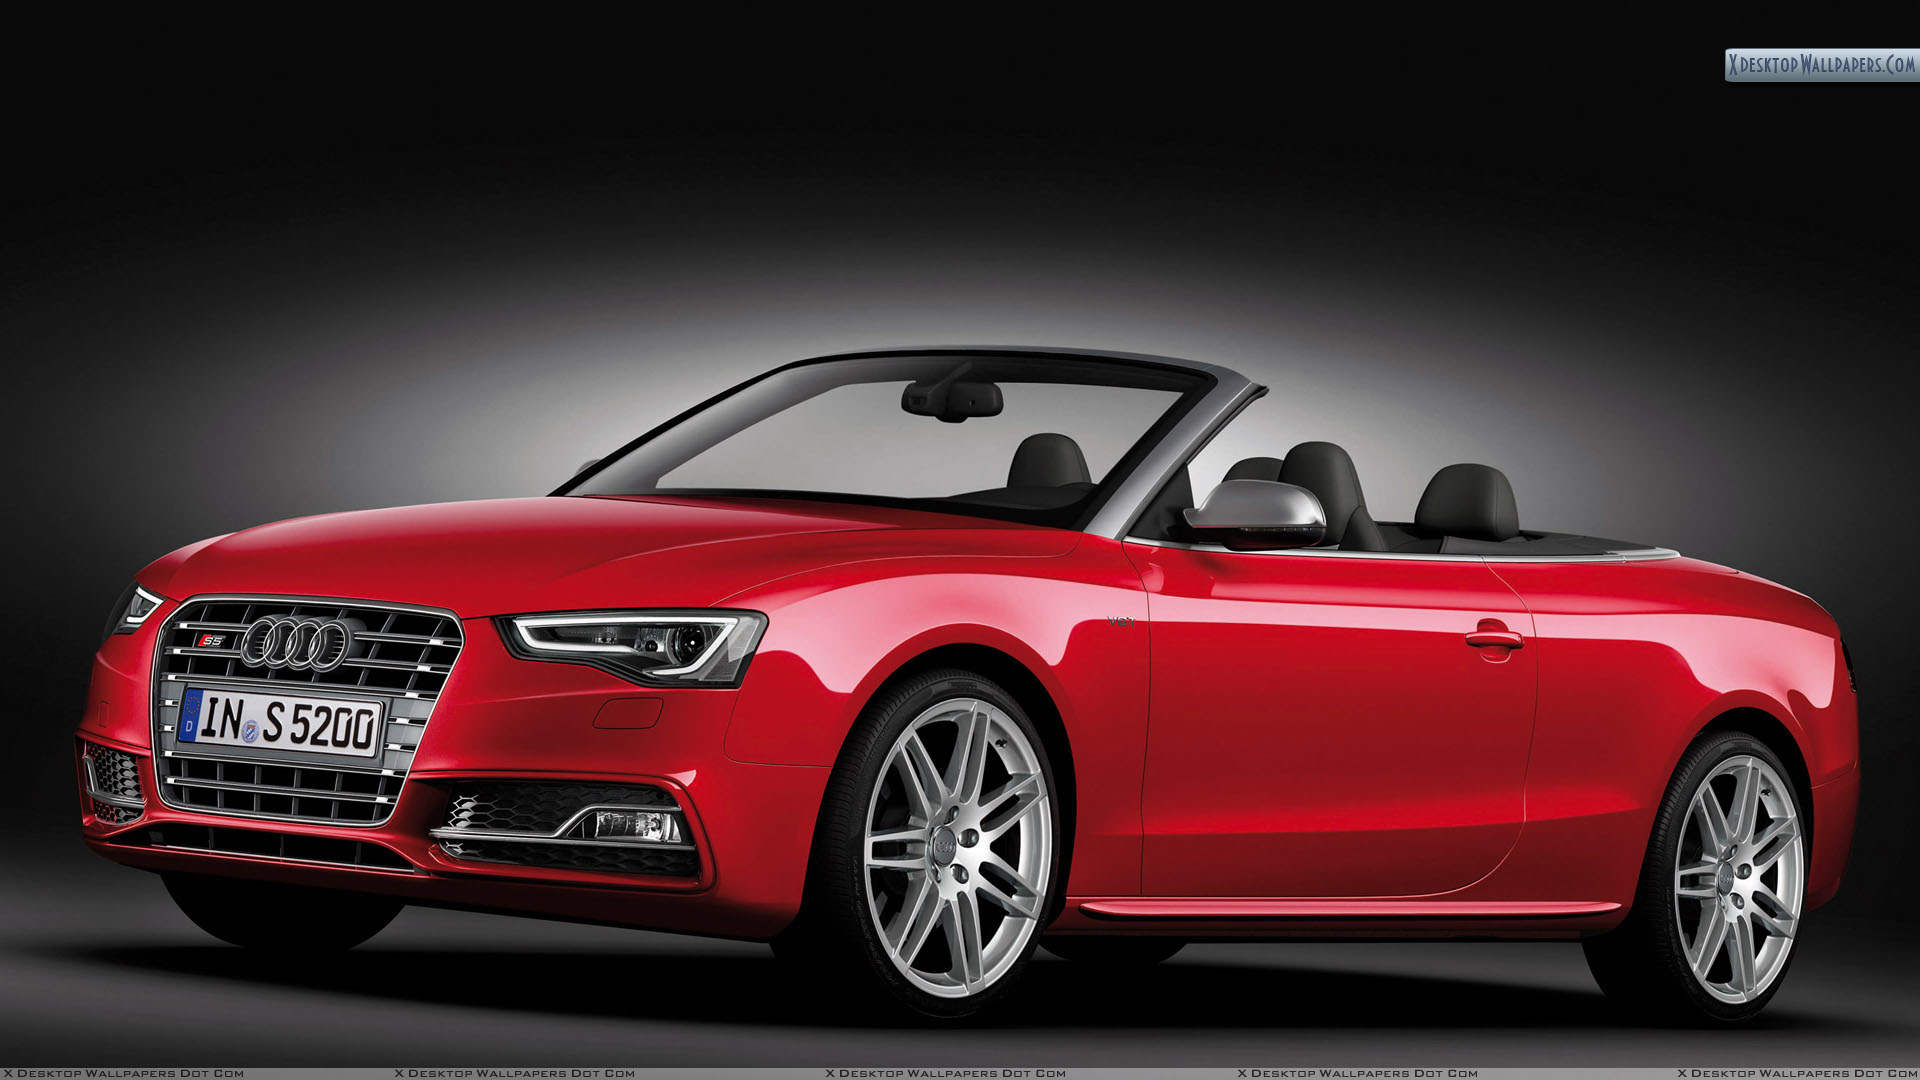 2012 Audi S5 Cabriolet Front HD Wallpaper